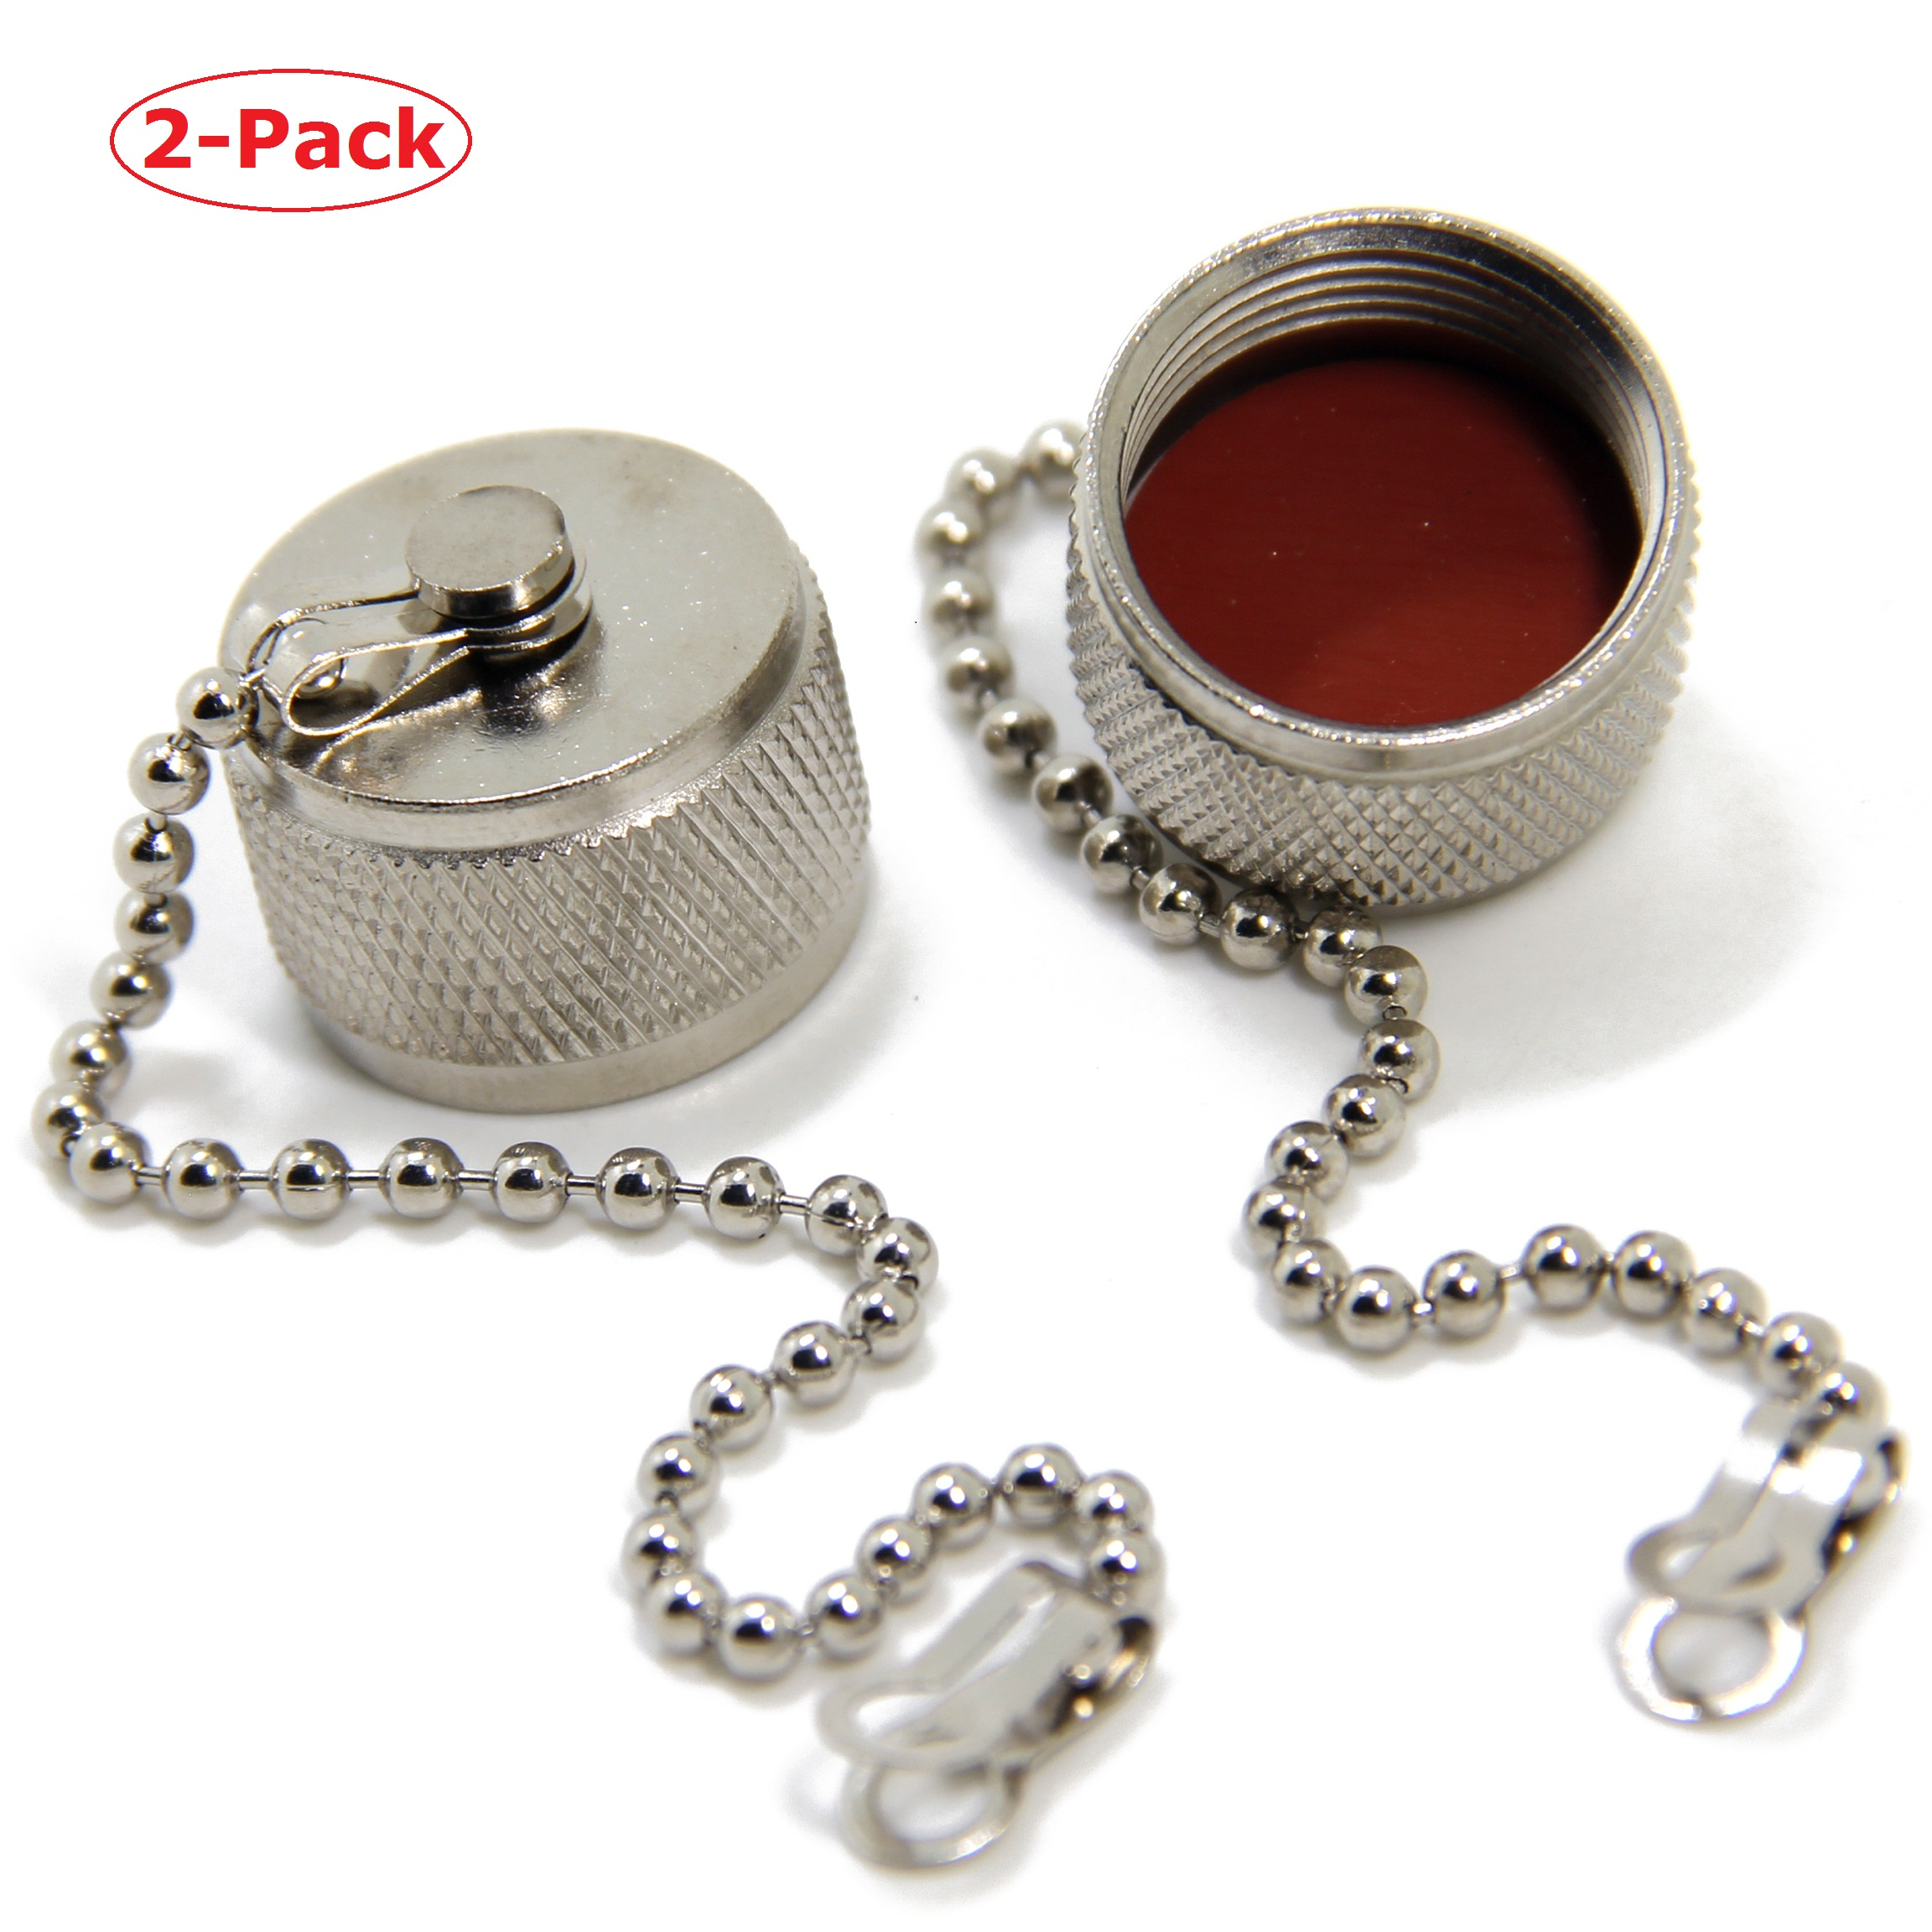 1PC Dust Cap Protection Cover With Chain For N Female or UHF SO239 RF Connector